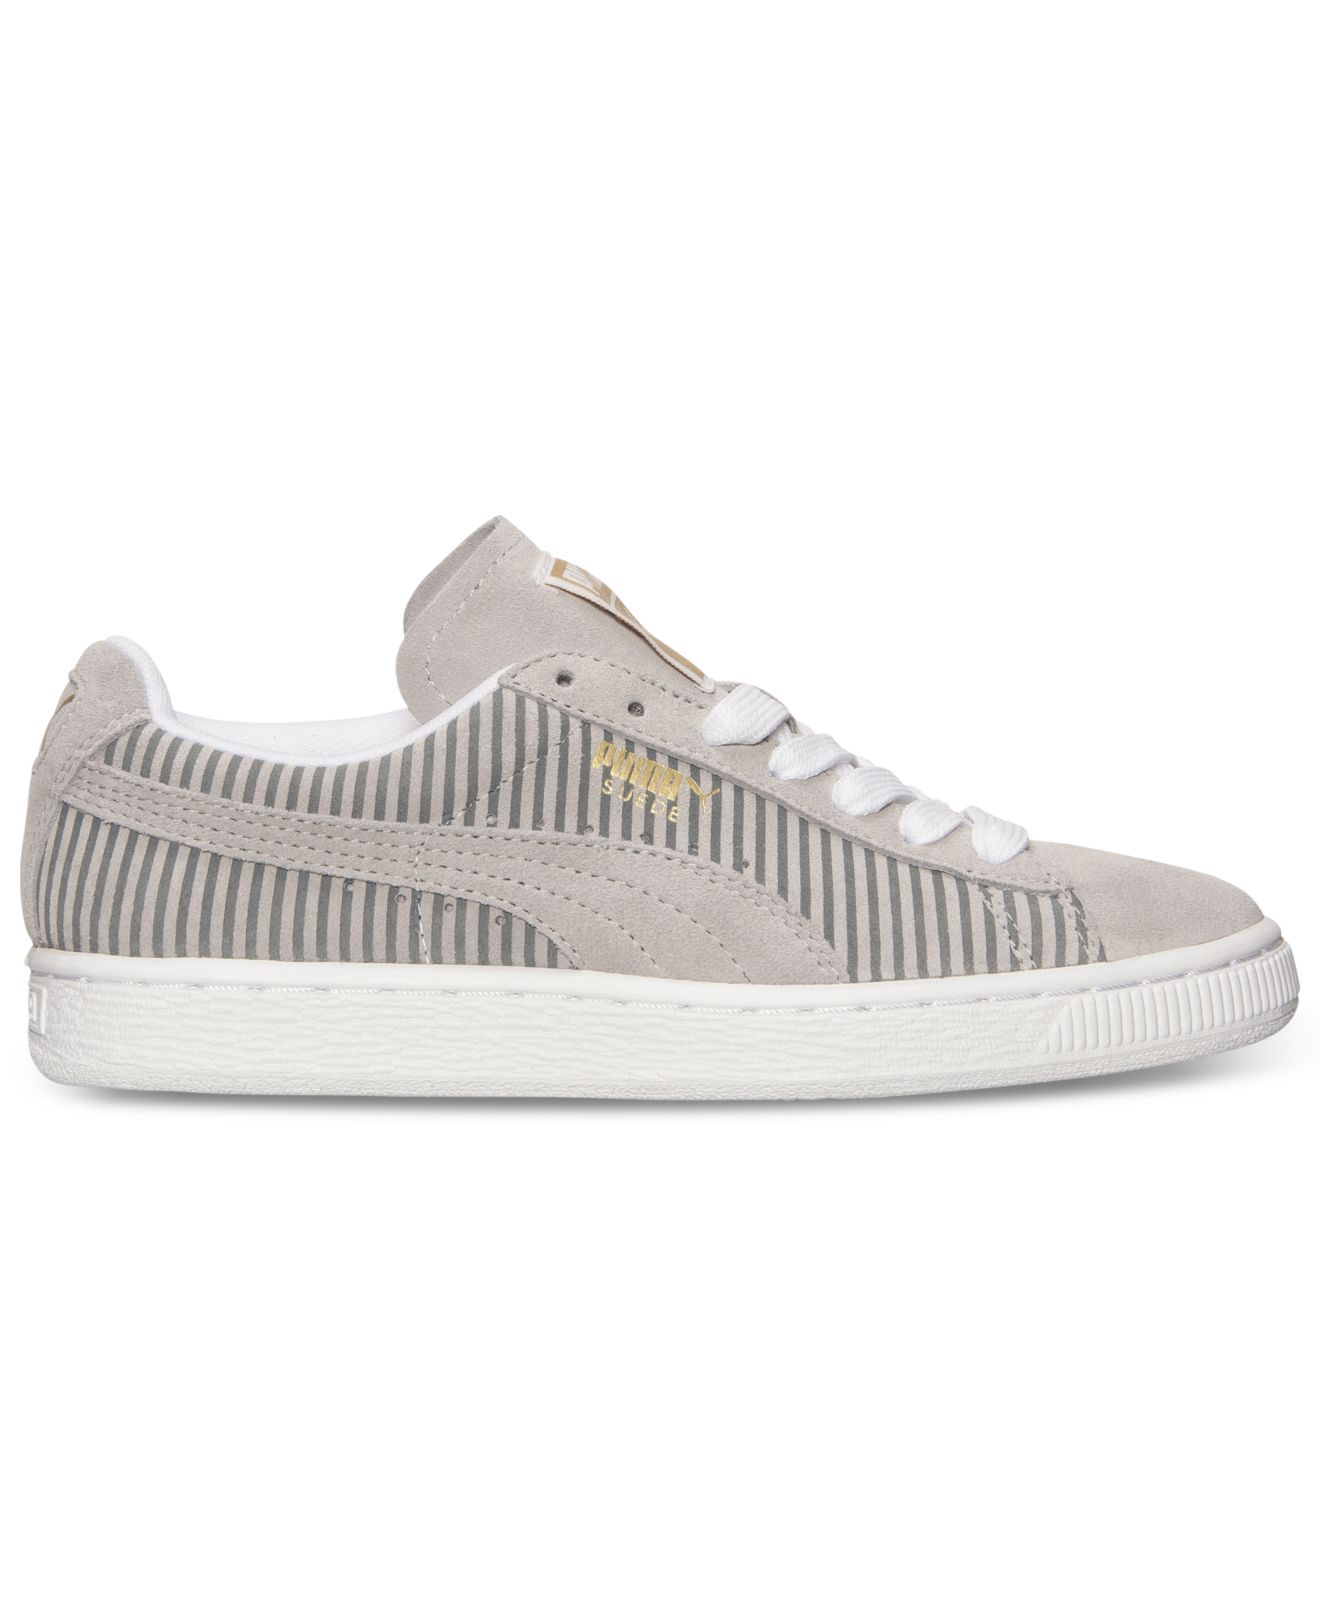 Lyst - PUMA Women S Suede Classic Lo Casual Sneakers From Finish ... 07b0f3104